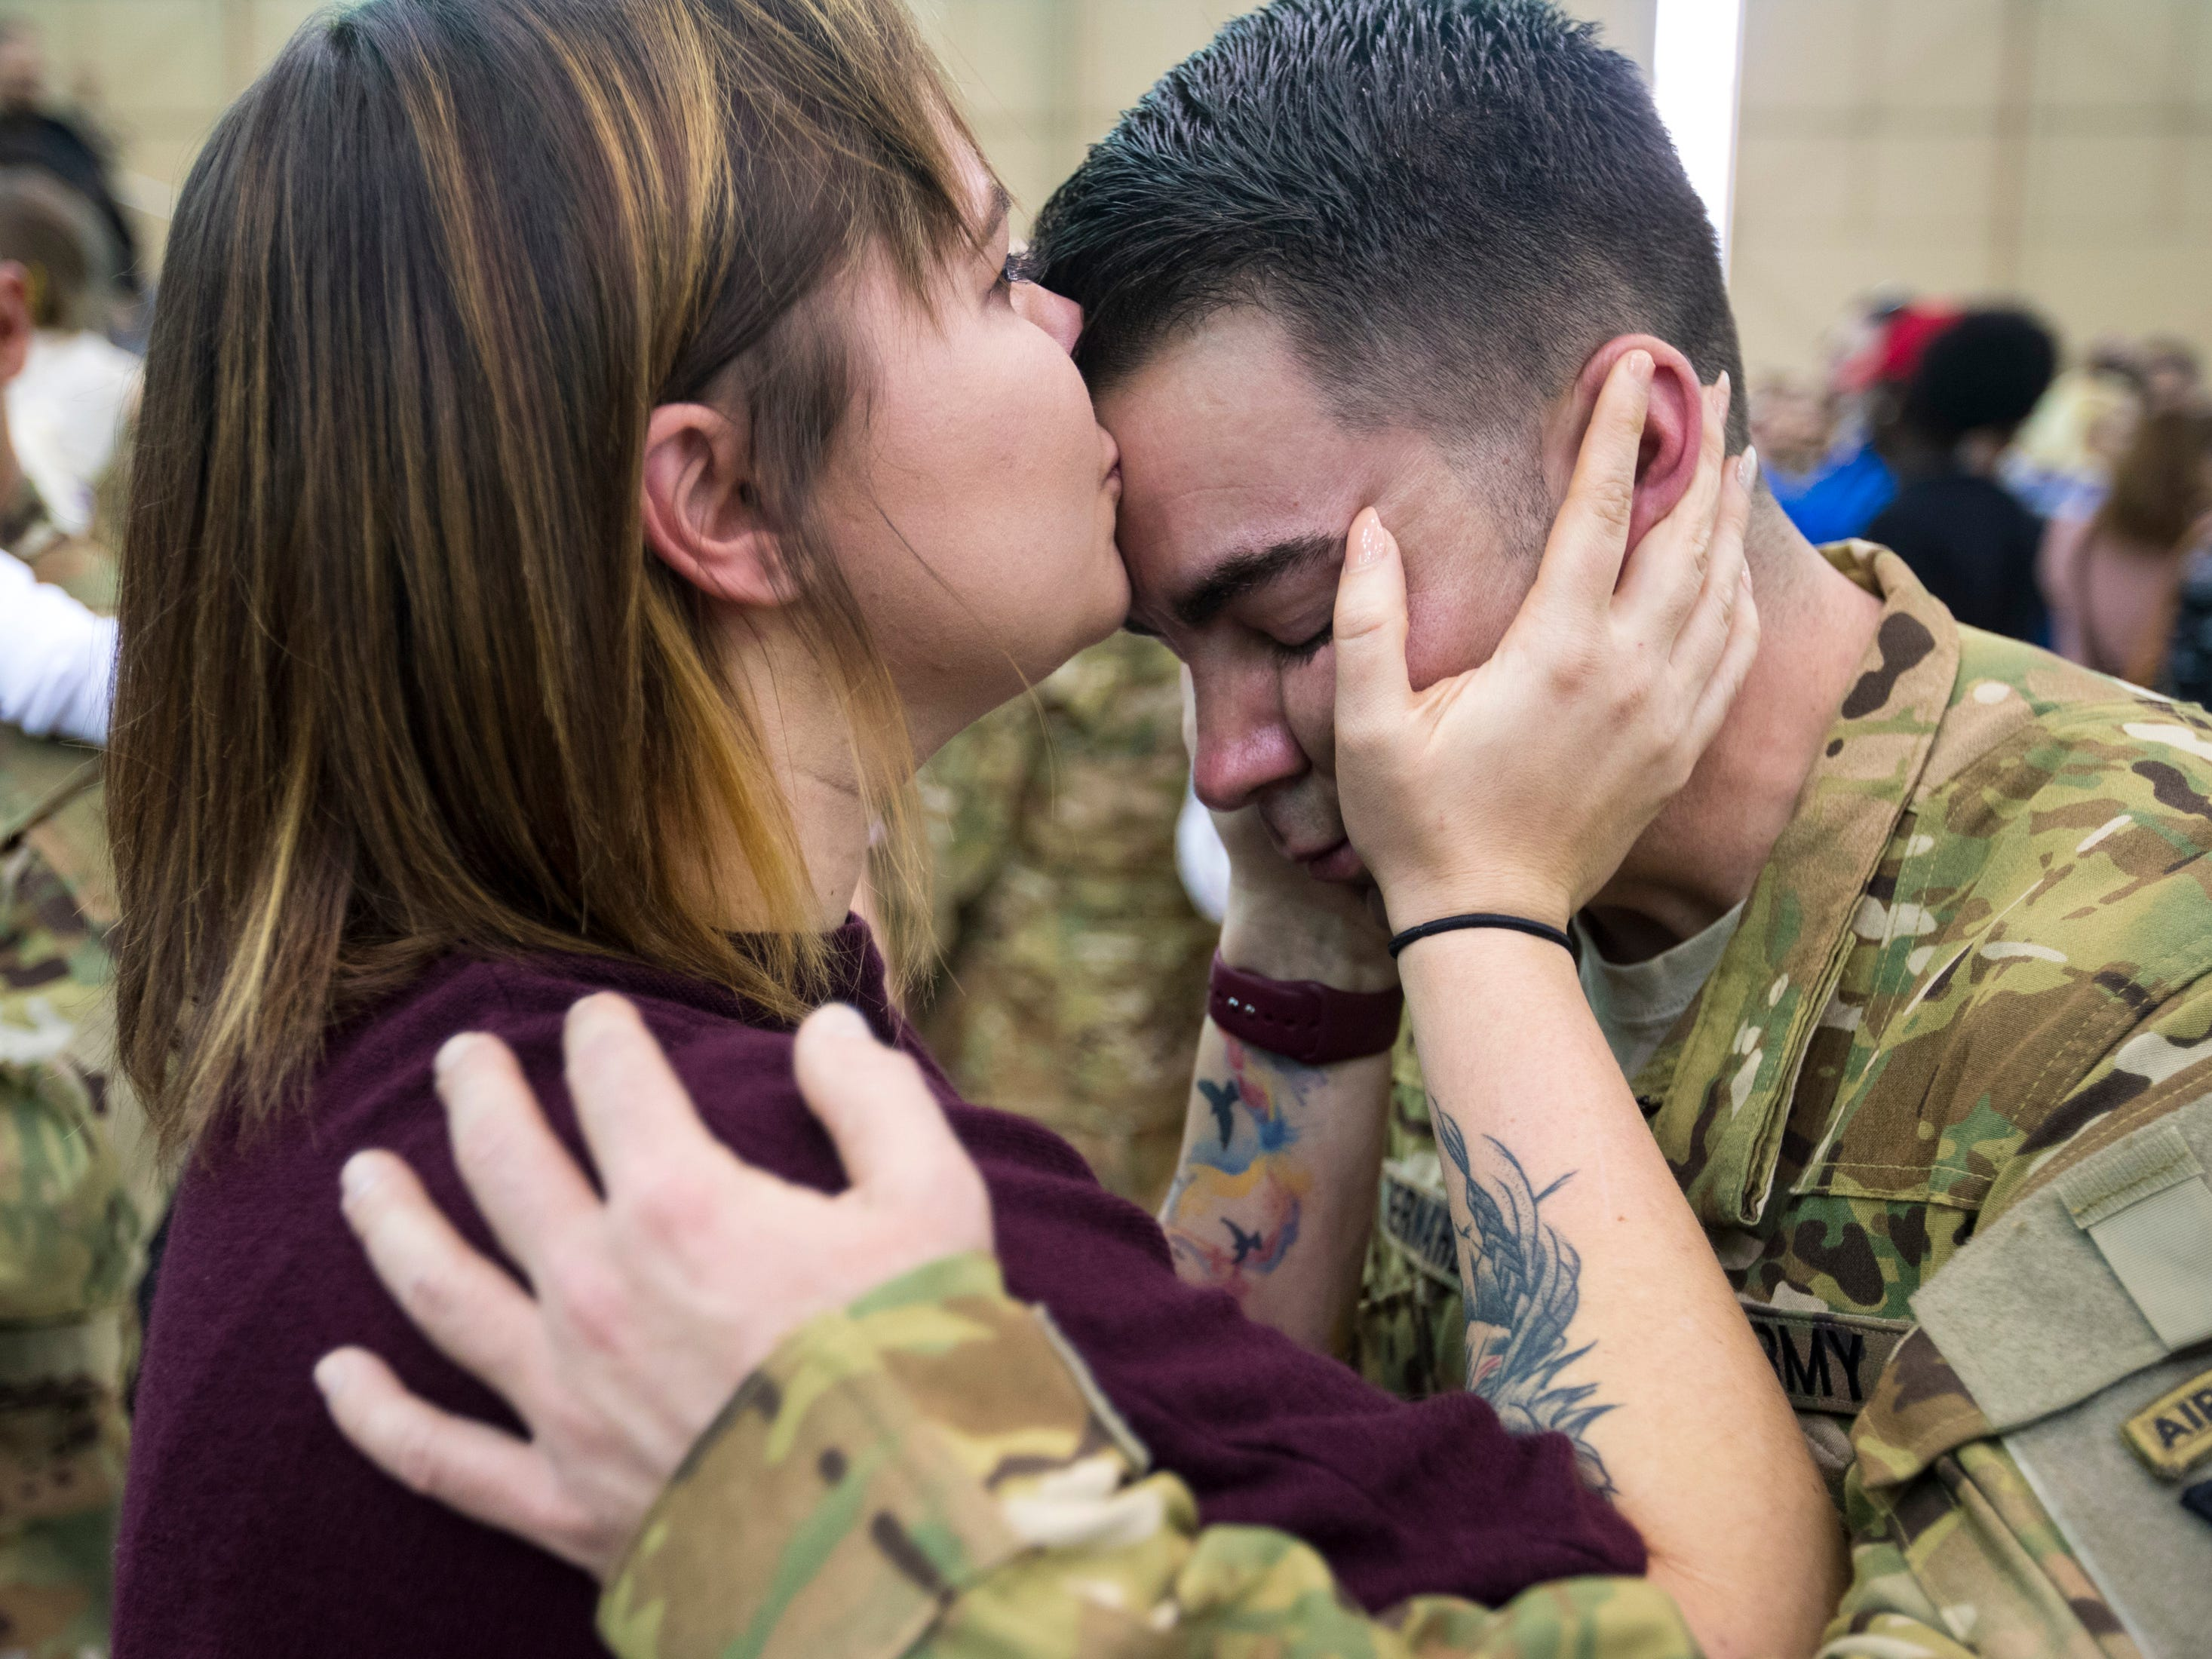 Staff Sgt. Nick Bernardy gets a kiss from Samantha Bernardy during the welcome home ceremony for members of the 101st Combat Aviation Brigade at Fort Campbell in Clarksville on Tuesday, Feb. 5, 2019. The soldiers were returning from a nine-month deployment to Afghanistan.